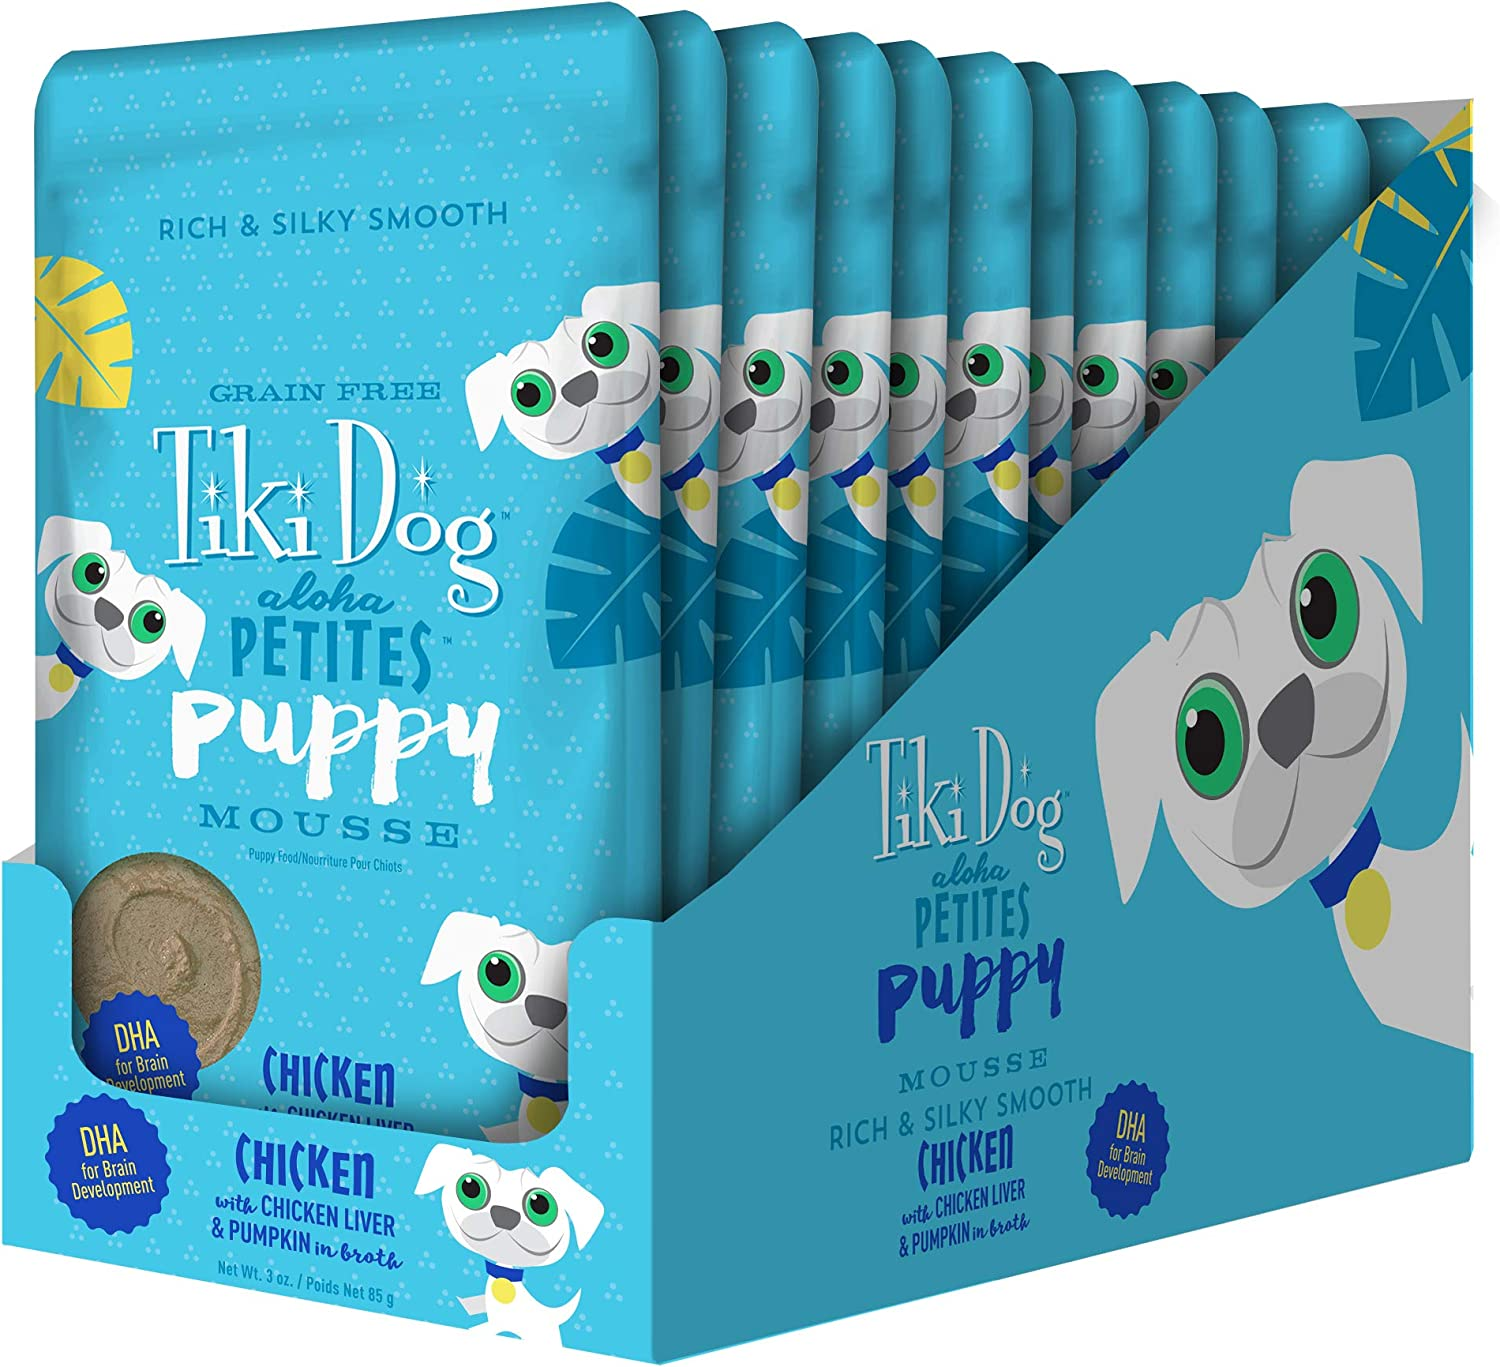 Tiki Pets Aloha Petites Grain Free Wet Dog Food, Pouches with Shredded Meat & Superfoods for Small or Large Dog Treats